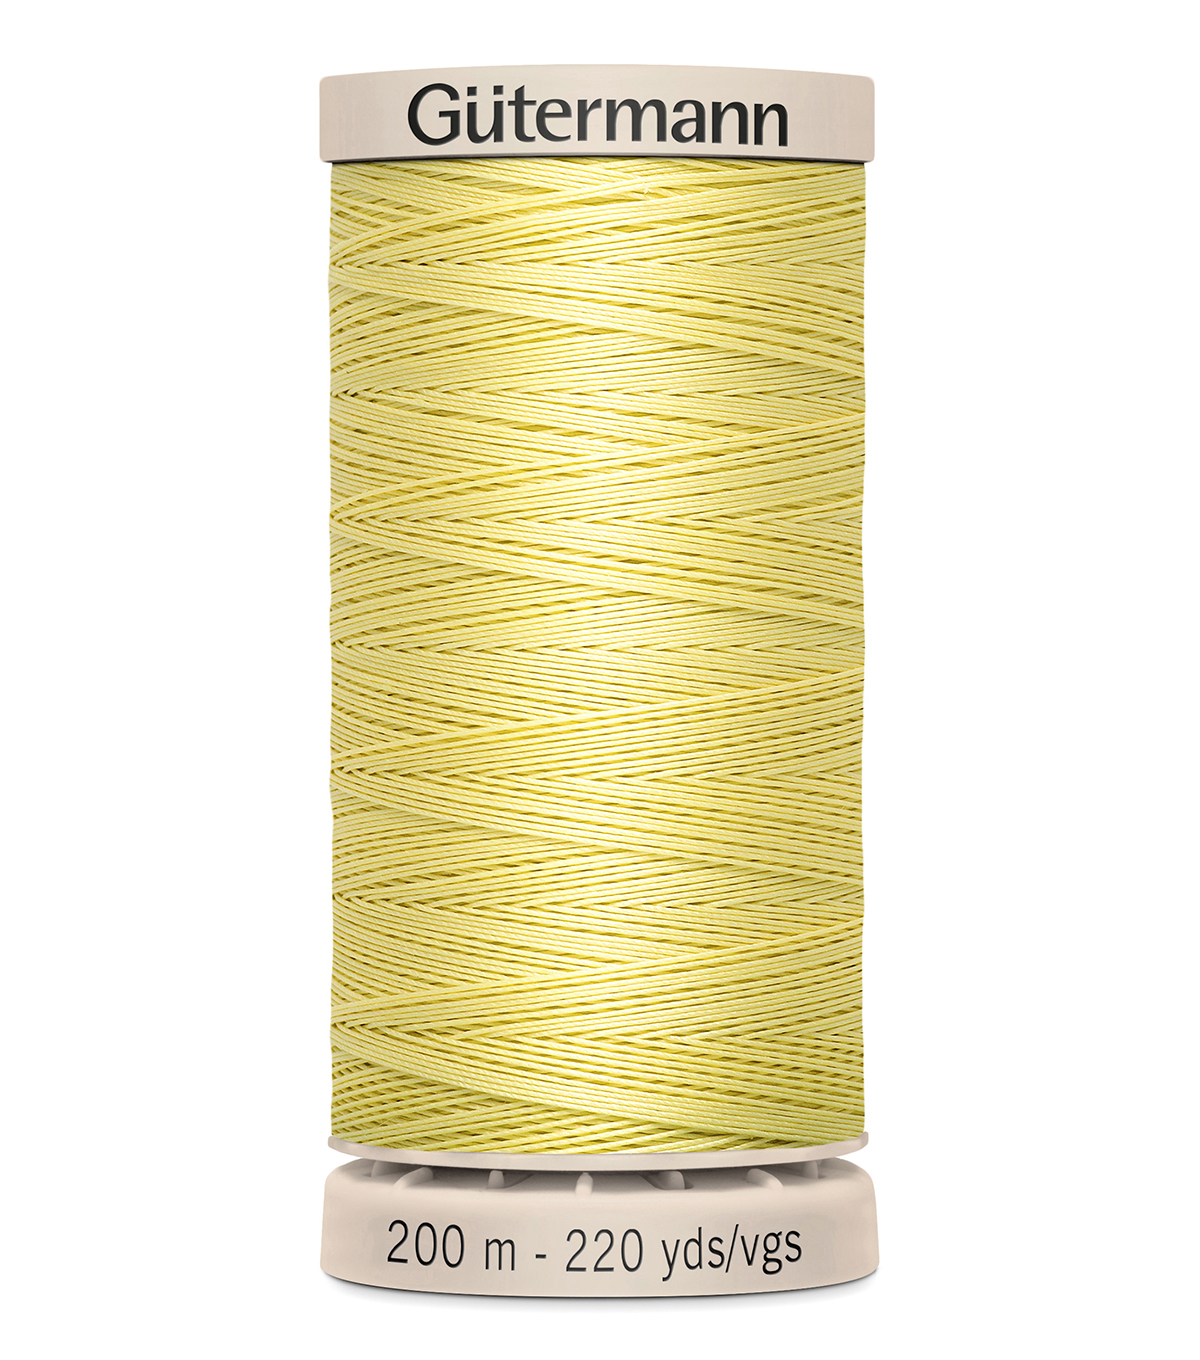 Gutermann Hand Quilting Thread 200 Meters (220 Yrds)-Primary, Canary #349